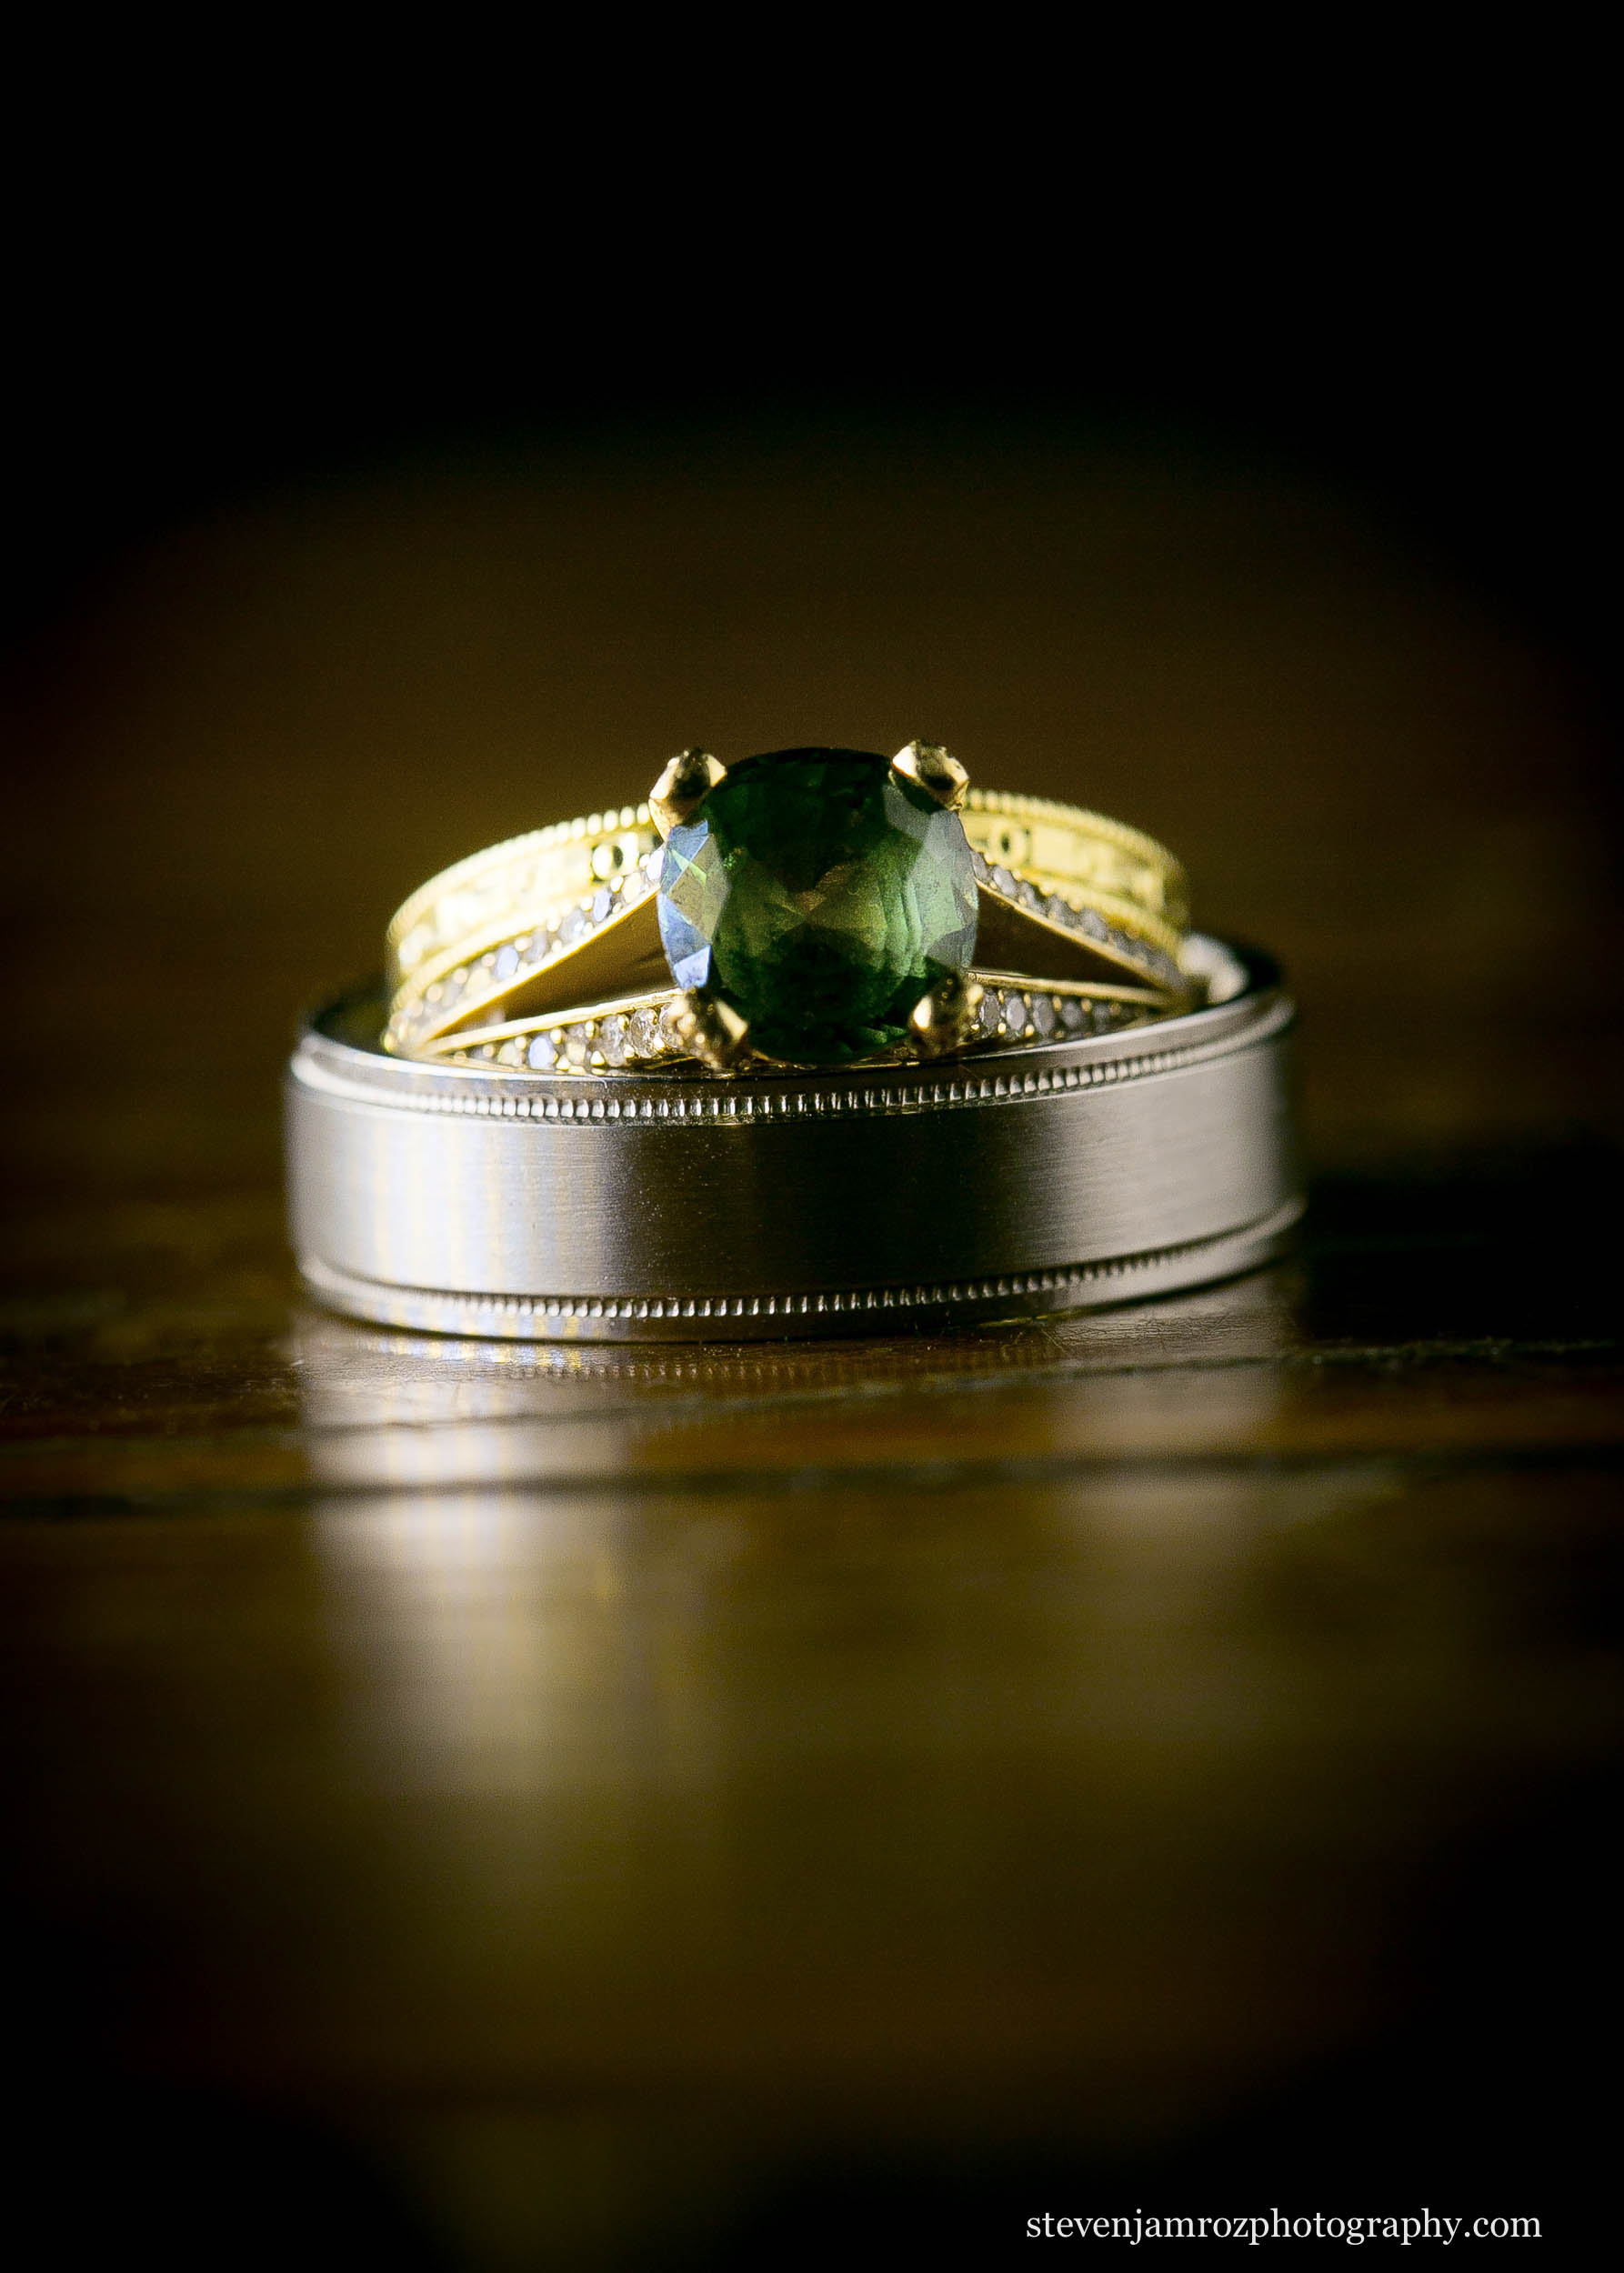 gold-silver-wedding-rings-cary-nc-steven-jamroz-photography-0362.jpg